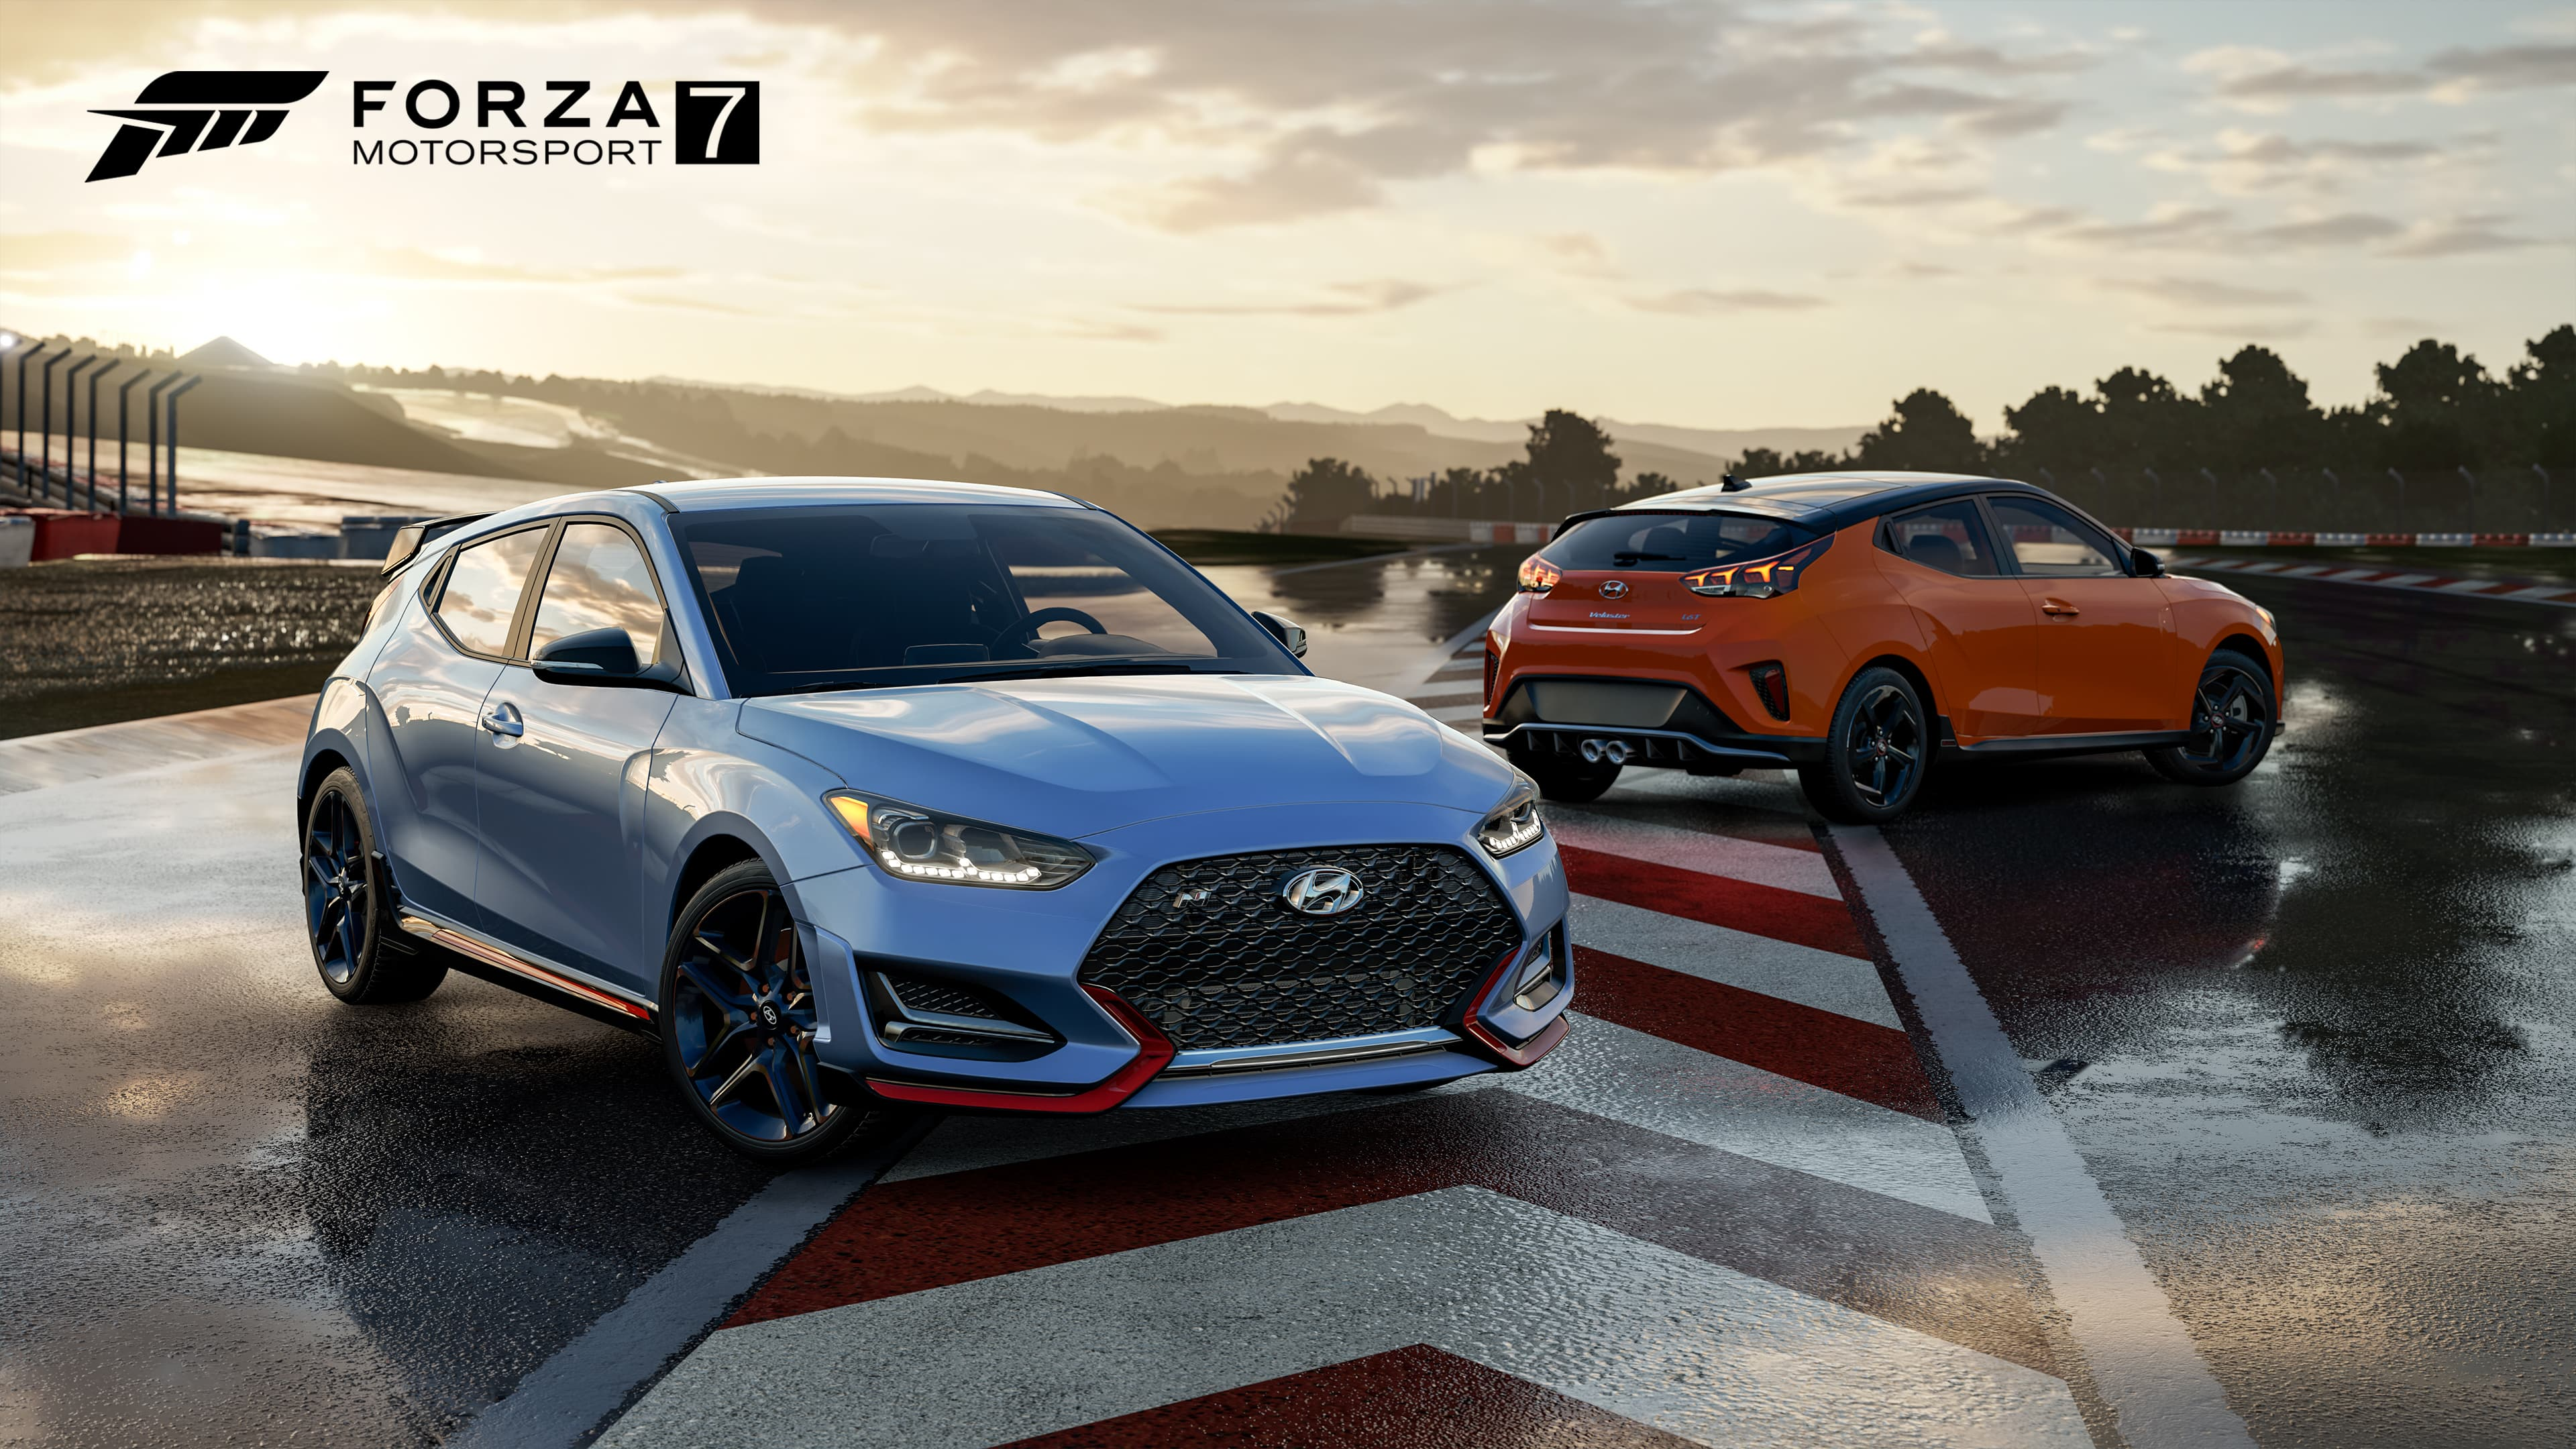 Hyundai Debuts 2019 Veloster Turbo and Veloster N in Forza Motorsport 7